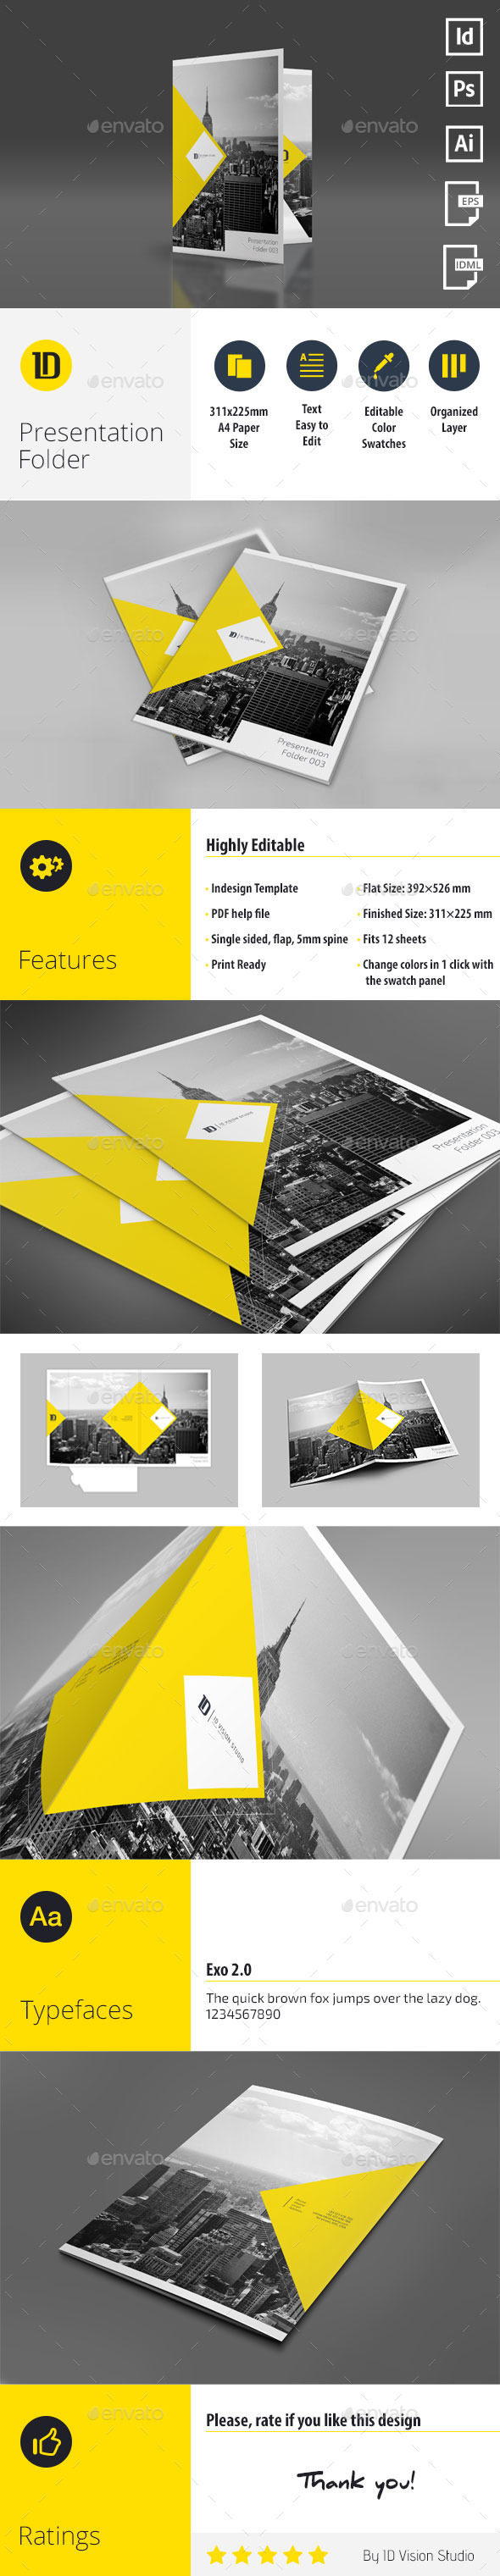 GraphicRiver A4 Self Locking Multipurpose Presentation Folder 003 10834788